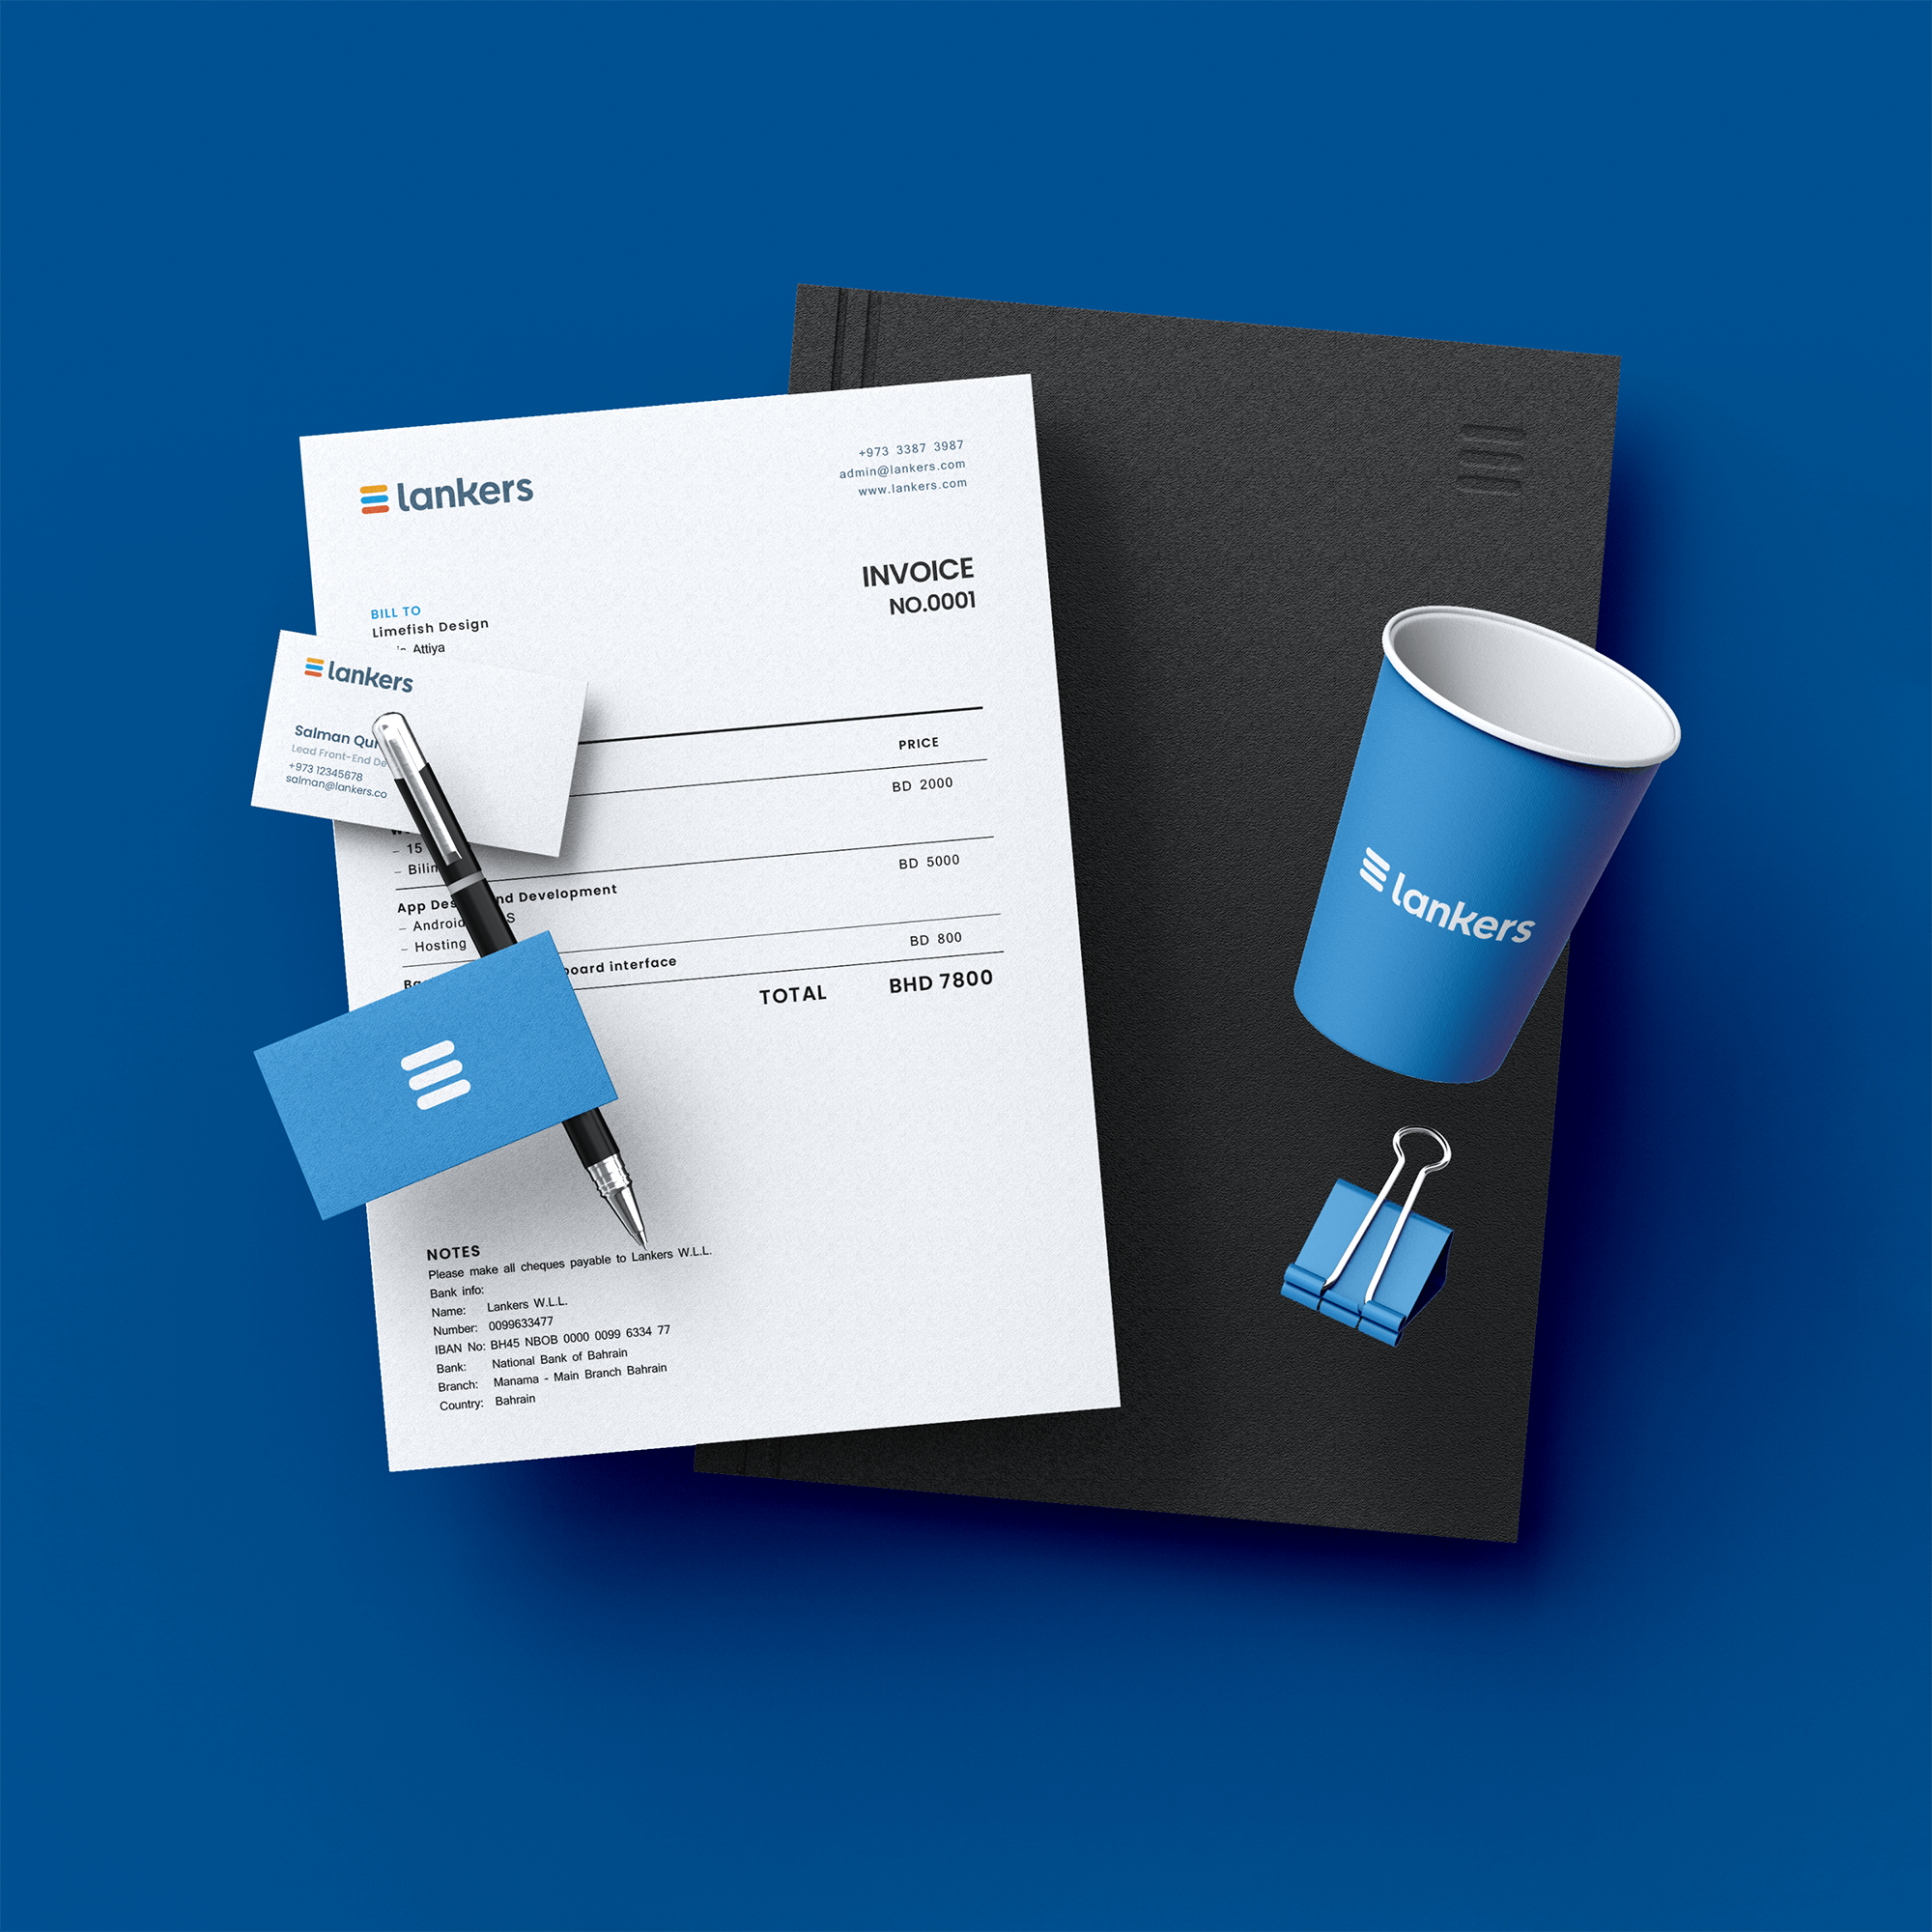 Stationery Design, Business cards, Envelopes, invoice, quotation, letterheads, cup design